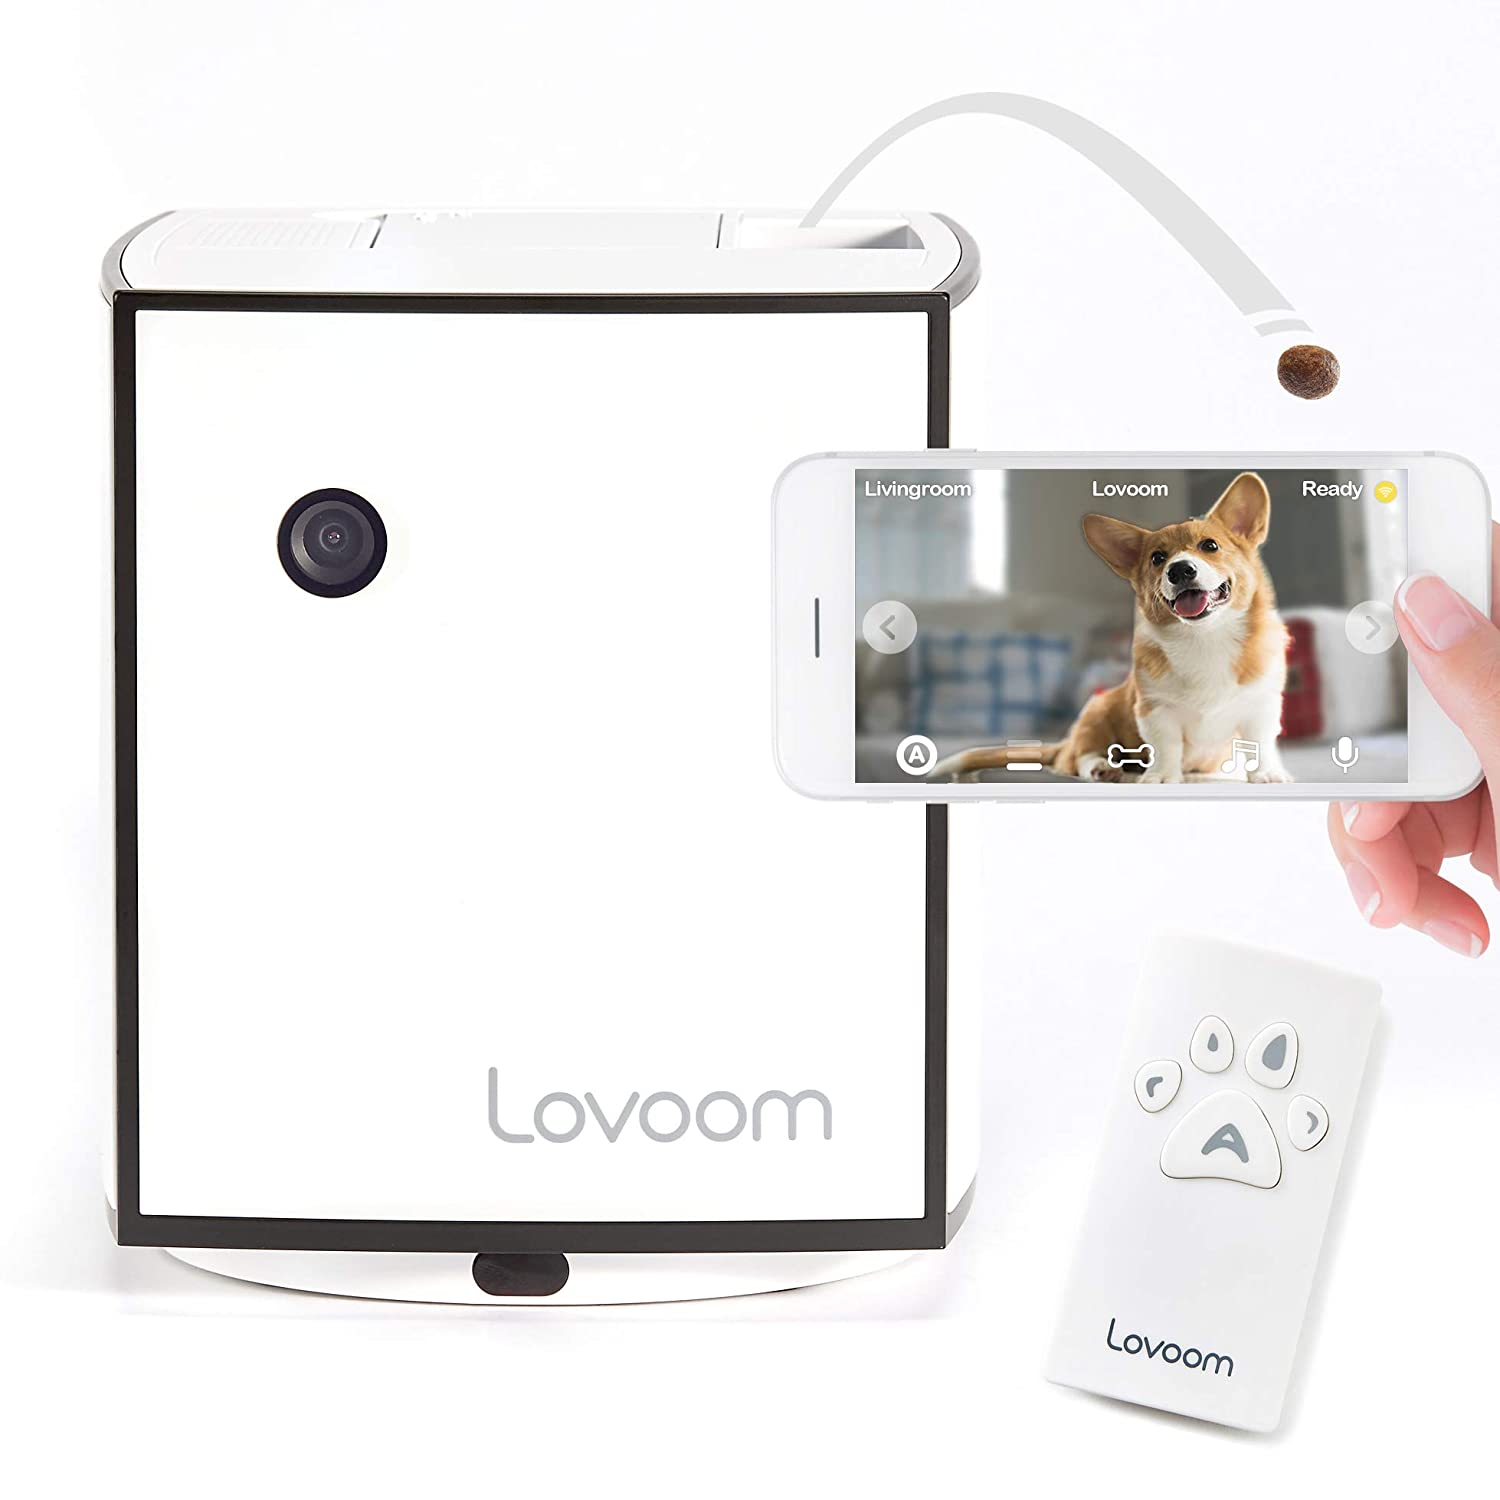 LOVOOM Pet Monitoring Camera Dog Camera with Treat Dispenser, Monitor Your pet remotely, HD Wi-Fi Pet Camera with Pan Zoom, Simultaneous 2 Way Audio, Remote Control for Dogs and Cats